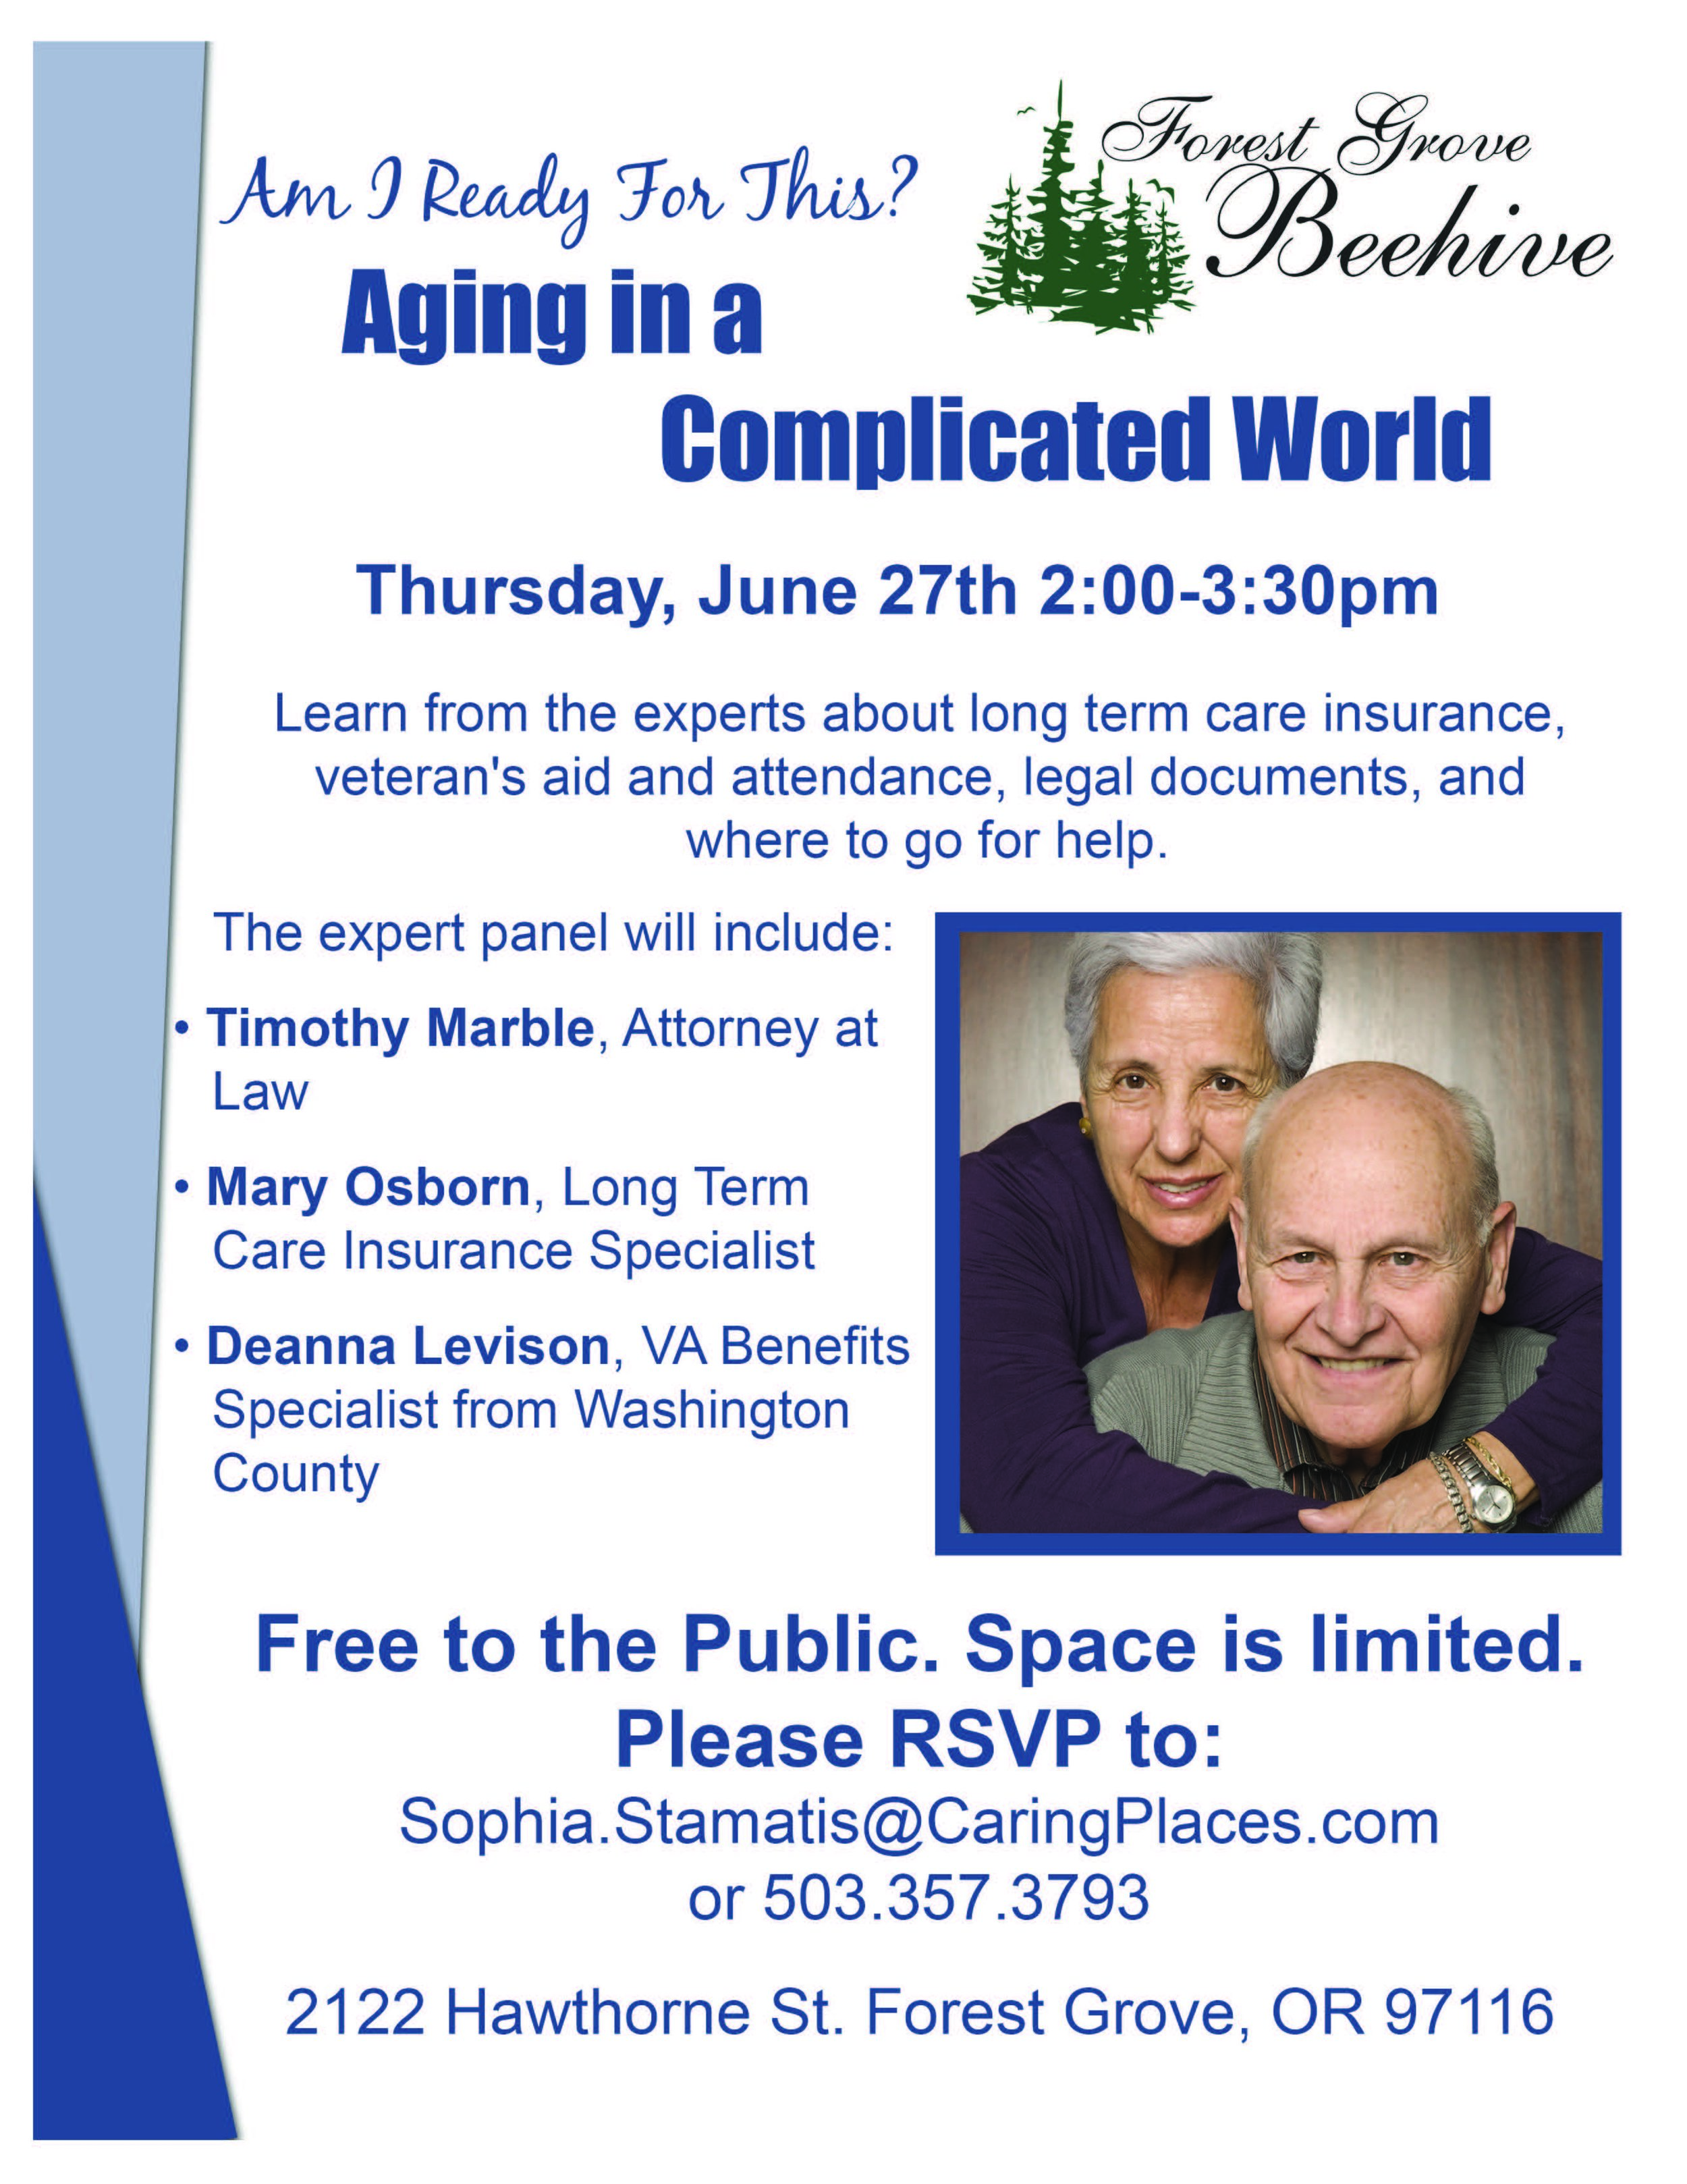 Aging in a Complicated World Flyer_Final.jpg